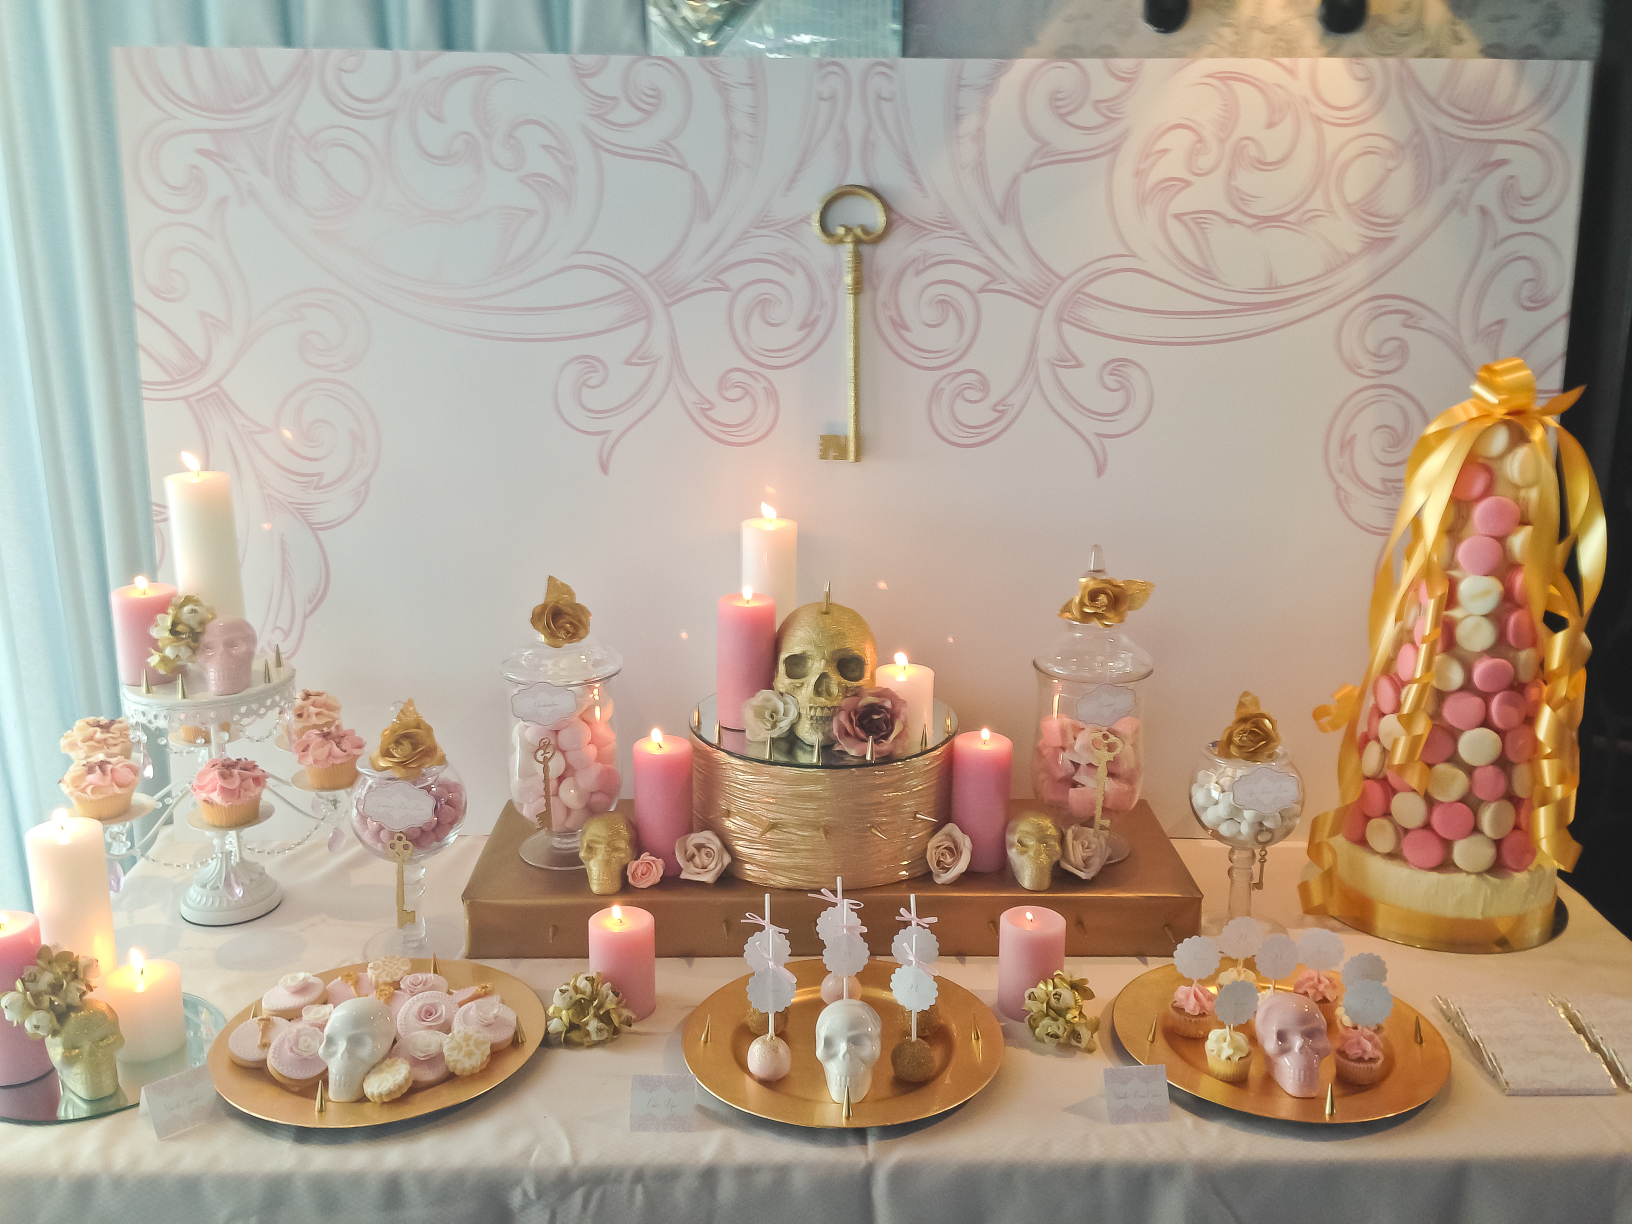 21st Birthday Table Decorations Ideas Image Inspiration Of Cake